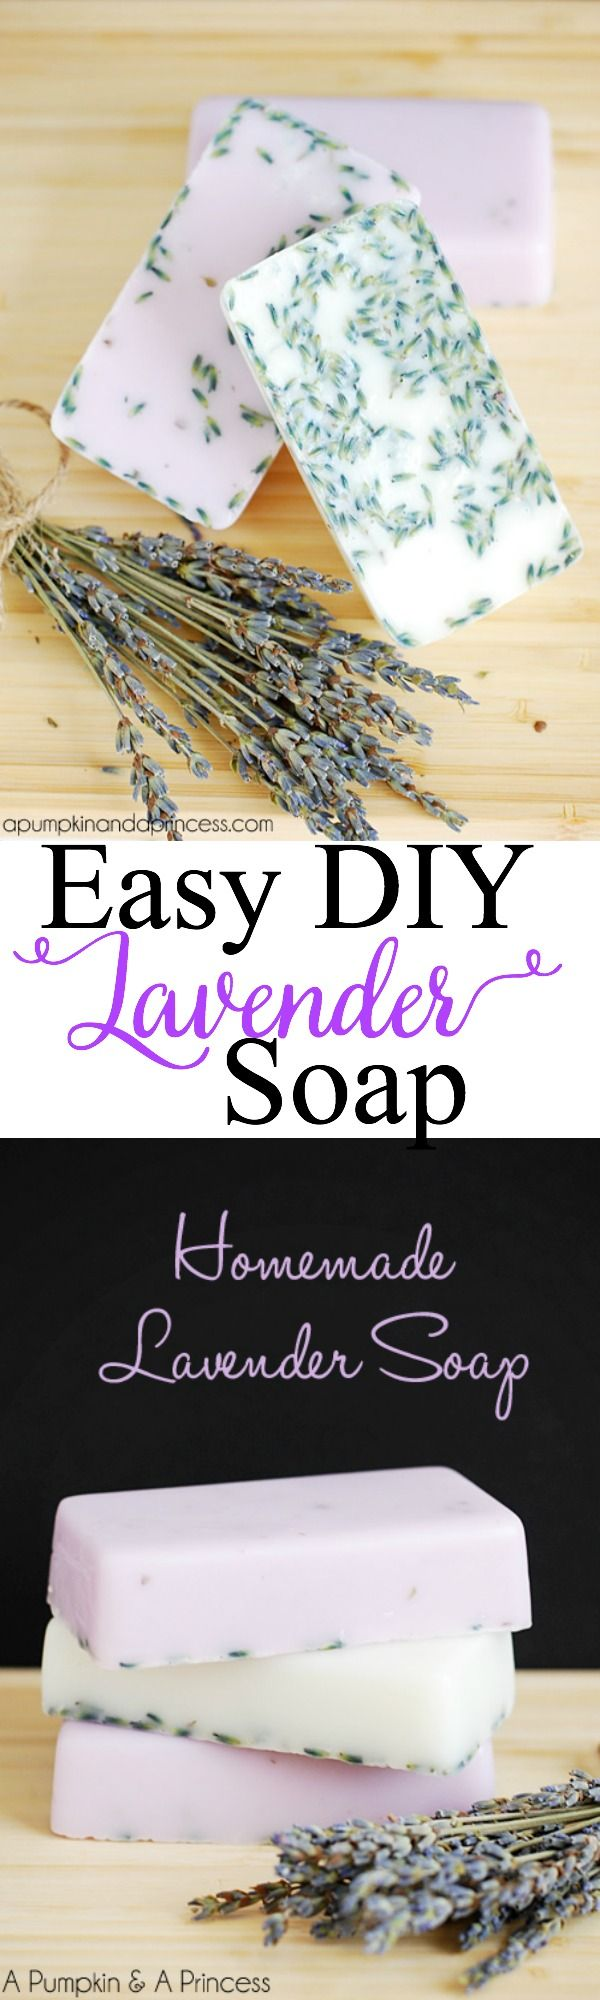 Very easy DIY Lavender Soap Tutorial- lavender essential oil is great for your skin and also very relaxing- perfect for a bath at bedtime!